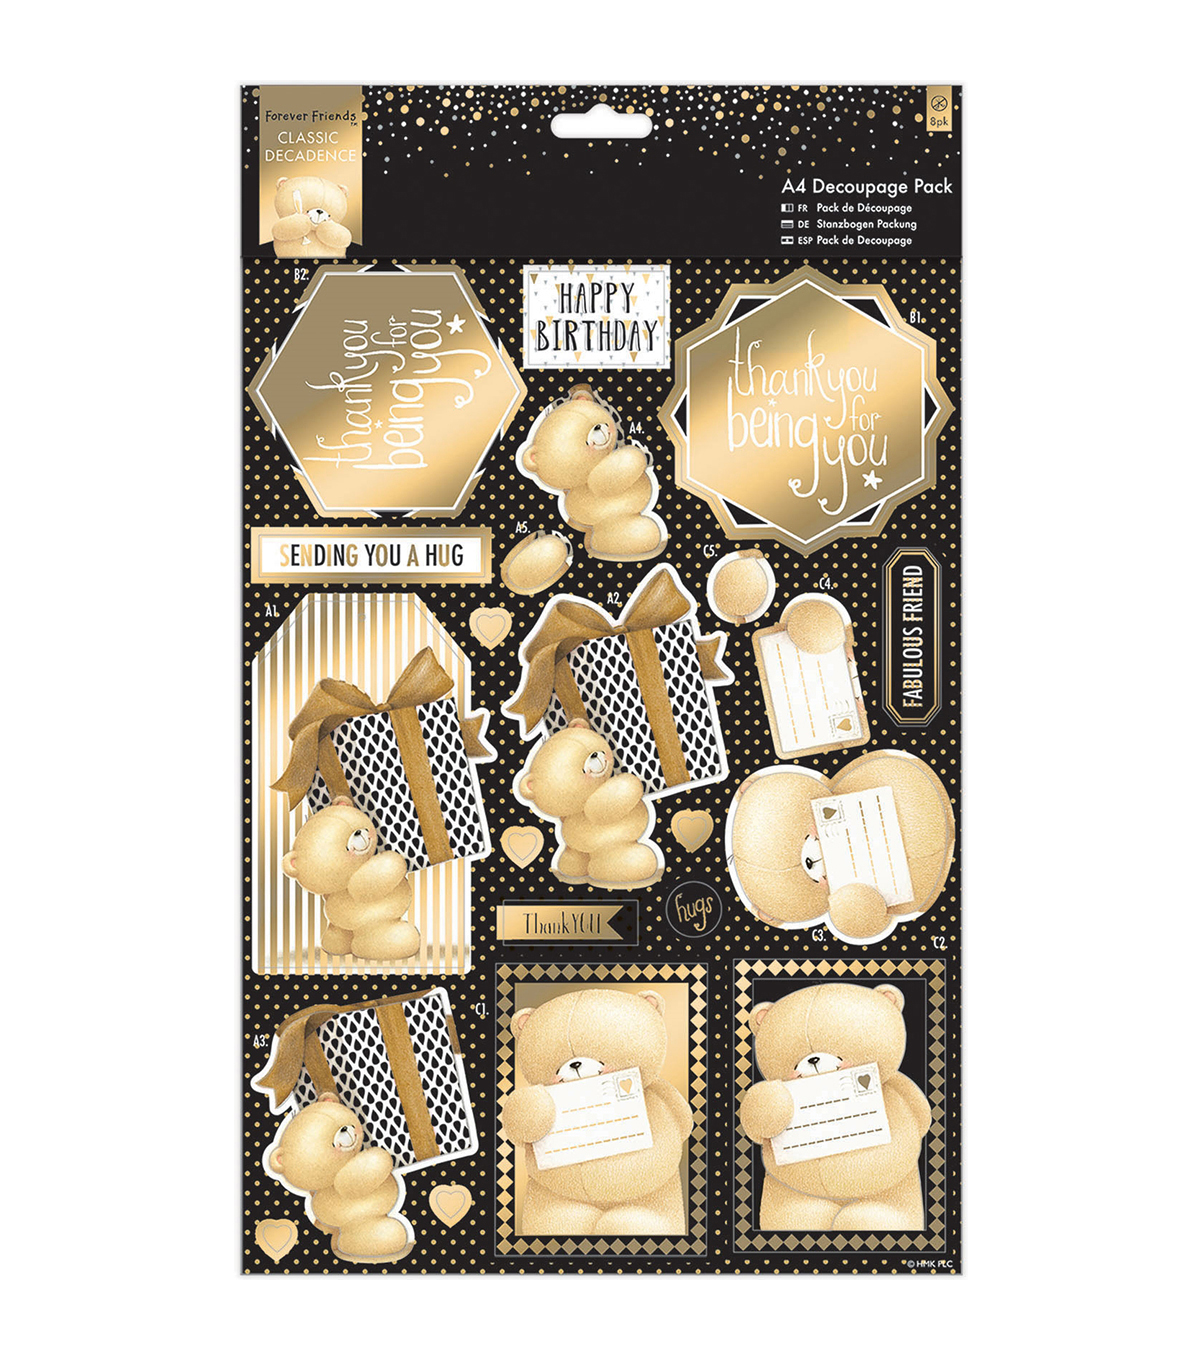 Docrafts Forever Friends Classic Decadence A4 Decoupage Pack-Star